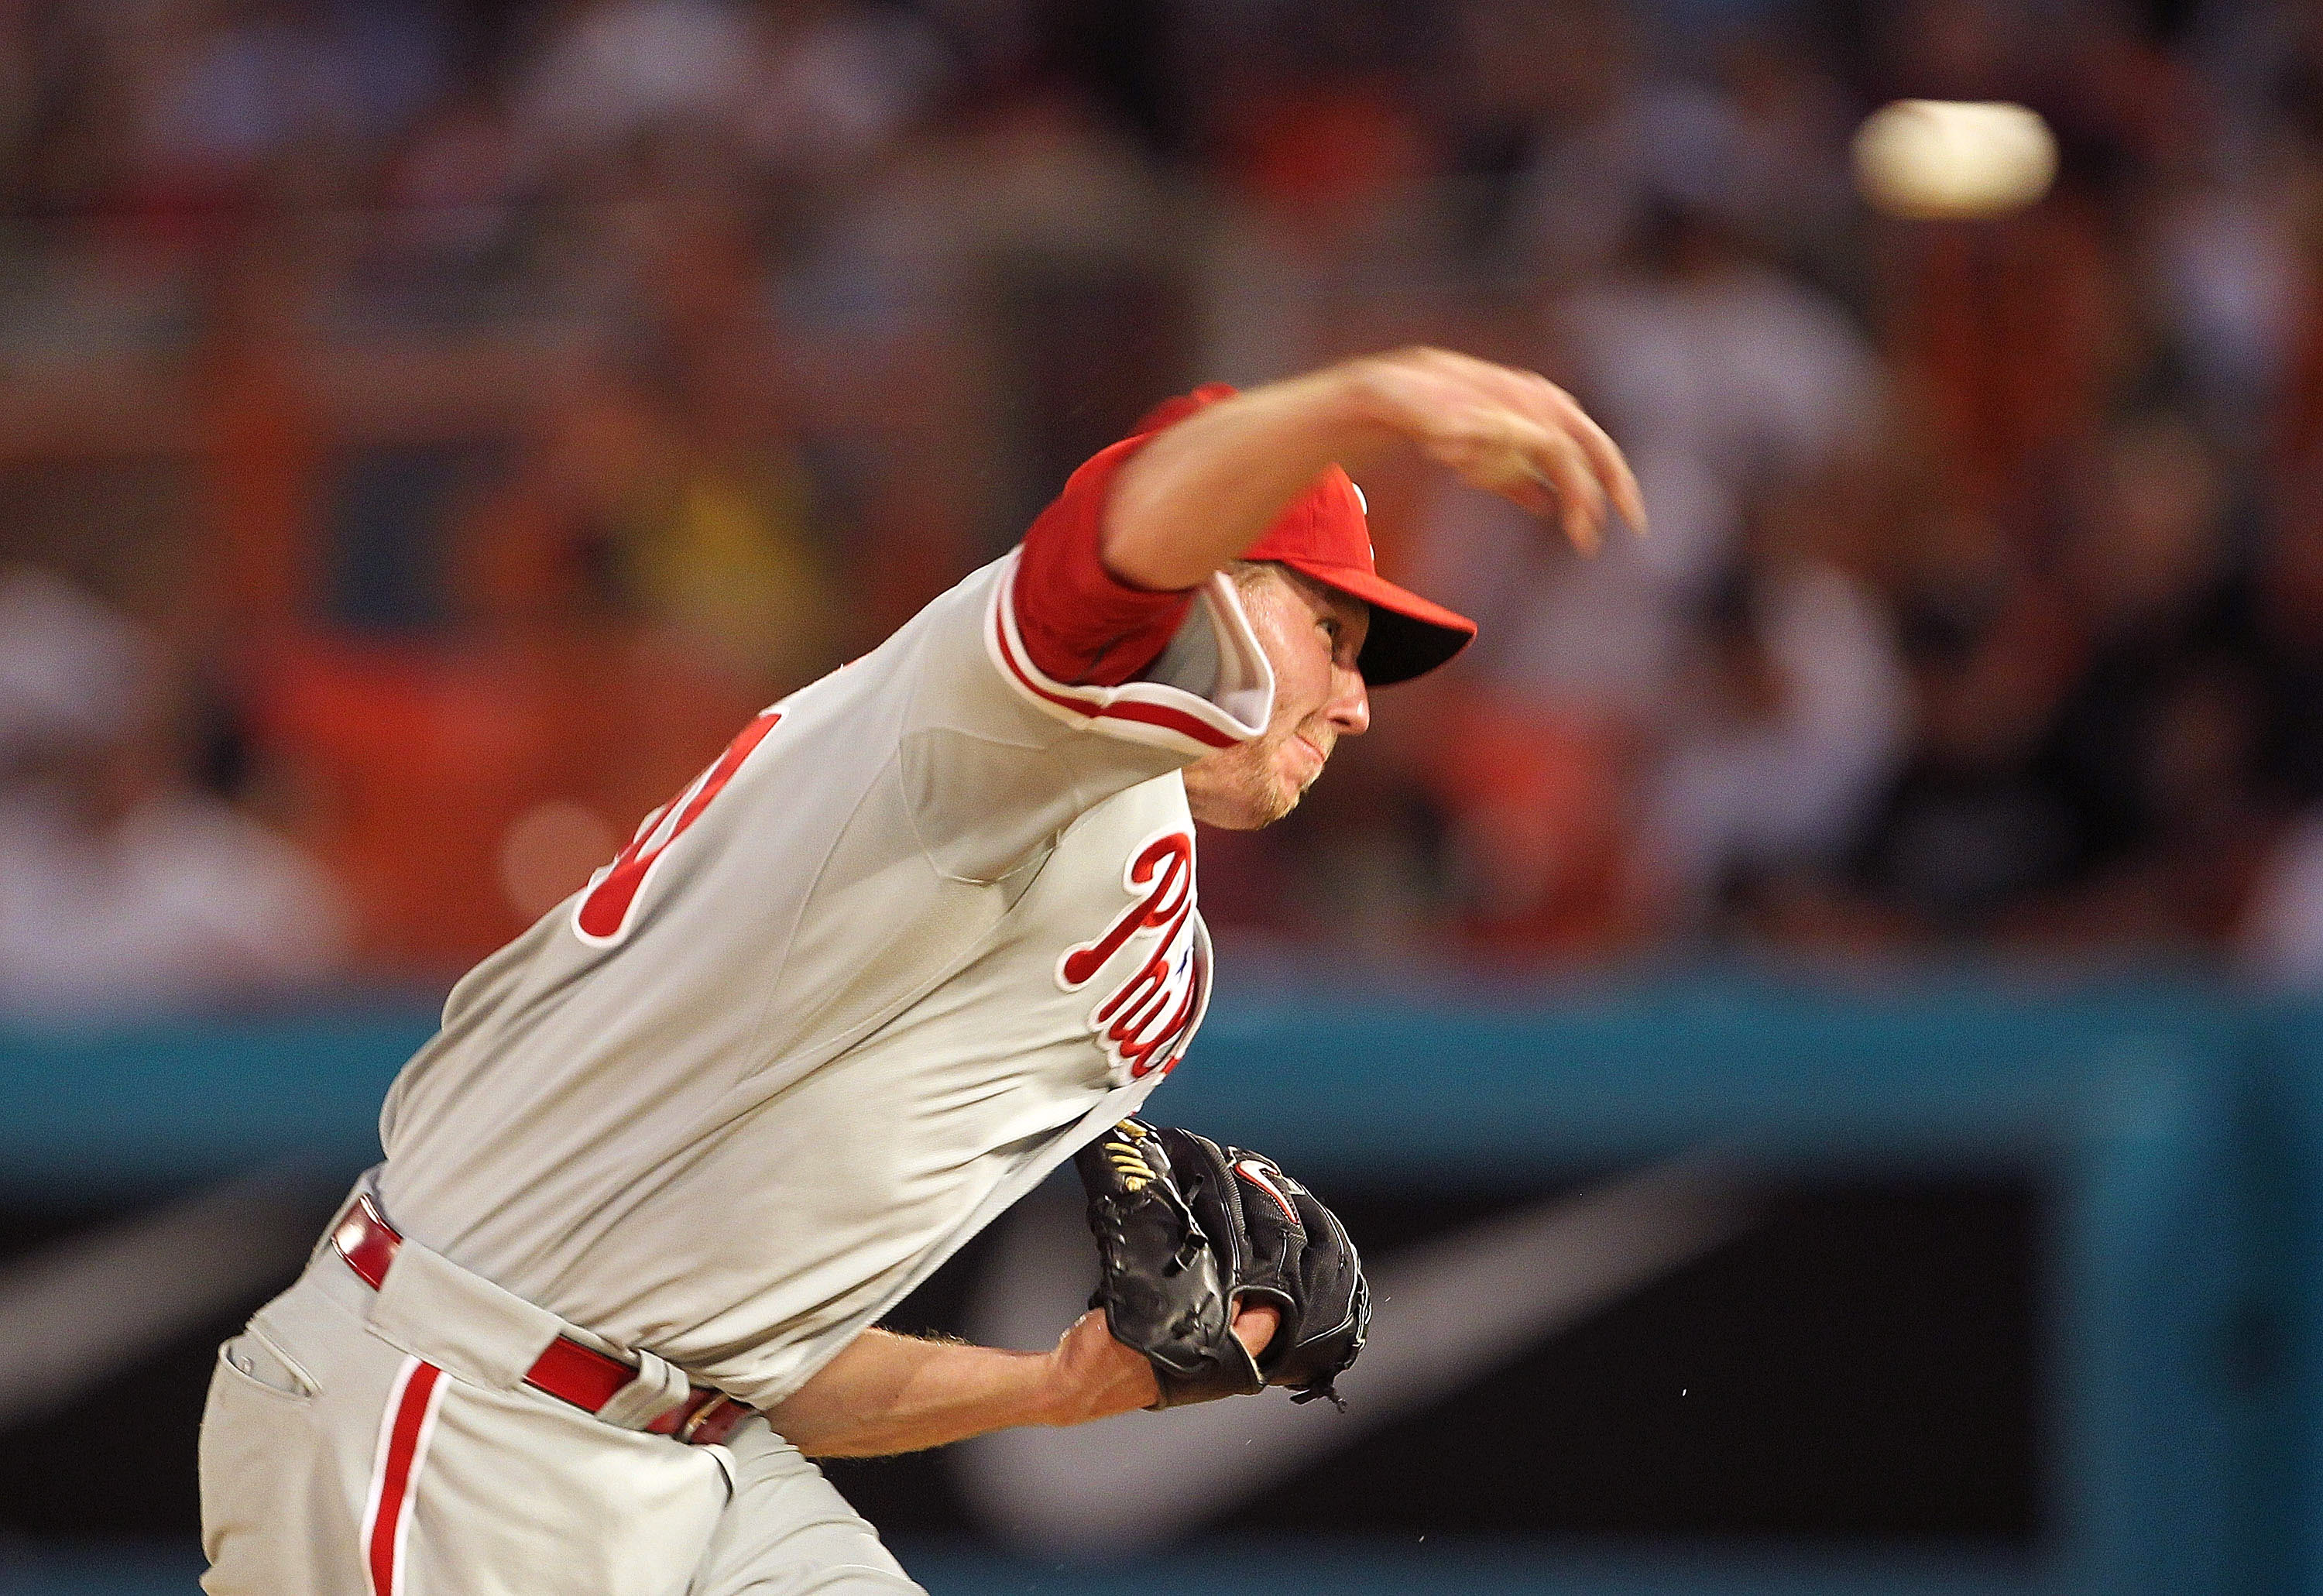 MIAMI GARDENS, FL - MAY 10:  Roy Halladay #34 of the Philadelphia Phillies pitches during a game against the Florida Marlins at Sun Life Stadium on May 10, 2011 in Miami Gardens, Florida.  (Photo by Mike Ehrmann/Getty Images)